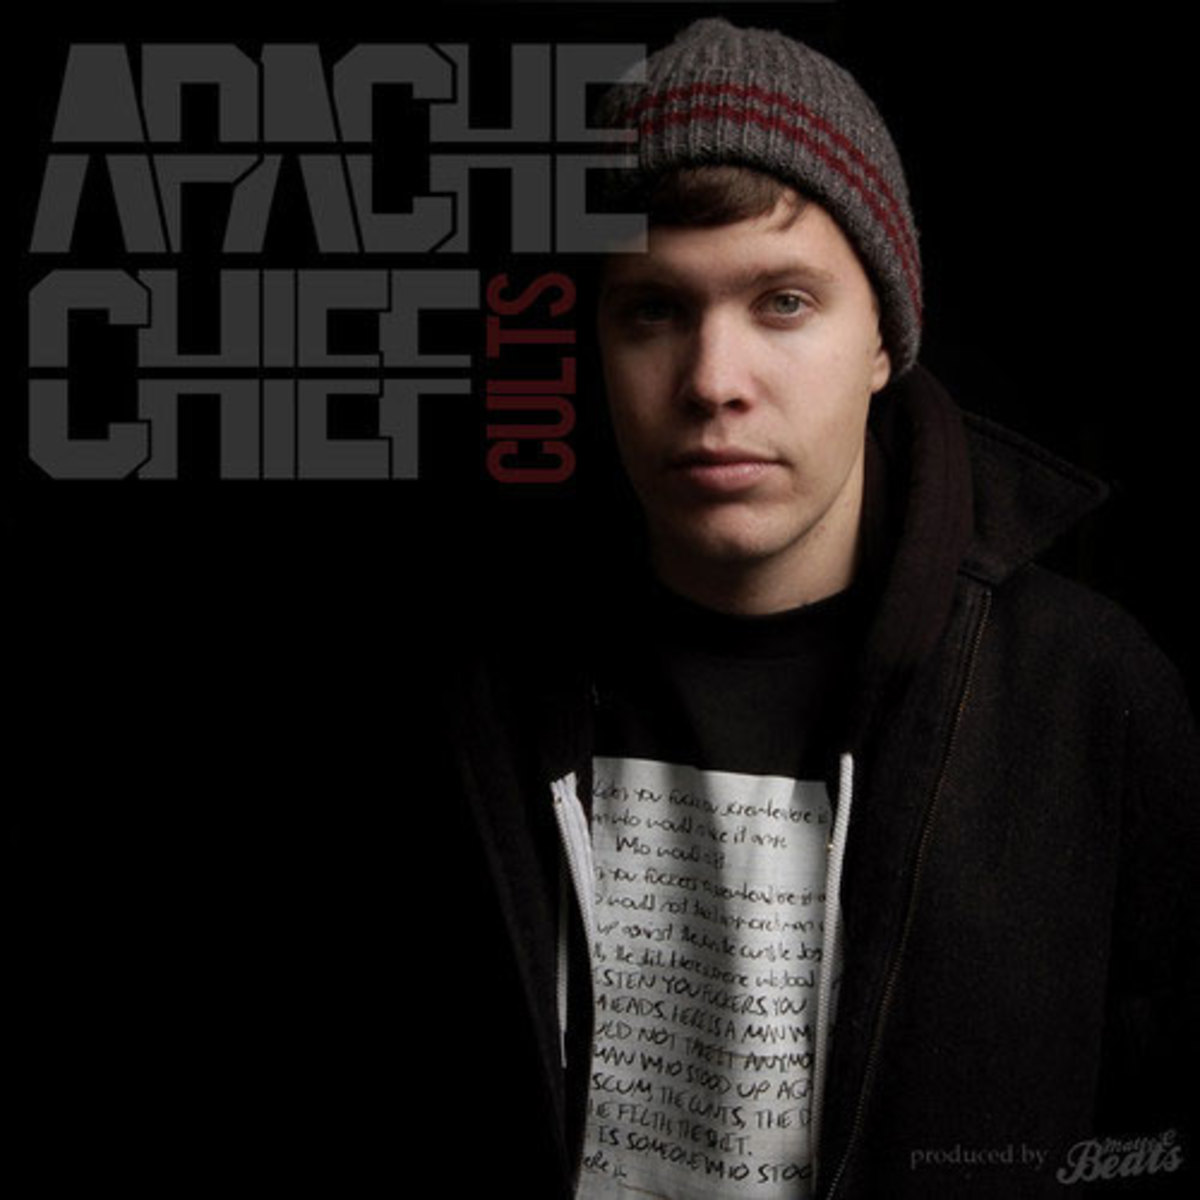 apachechief-cults.jpg